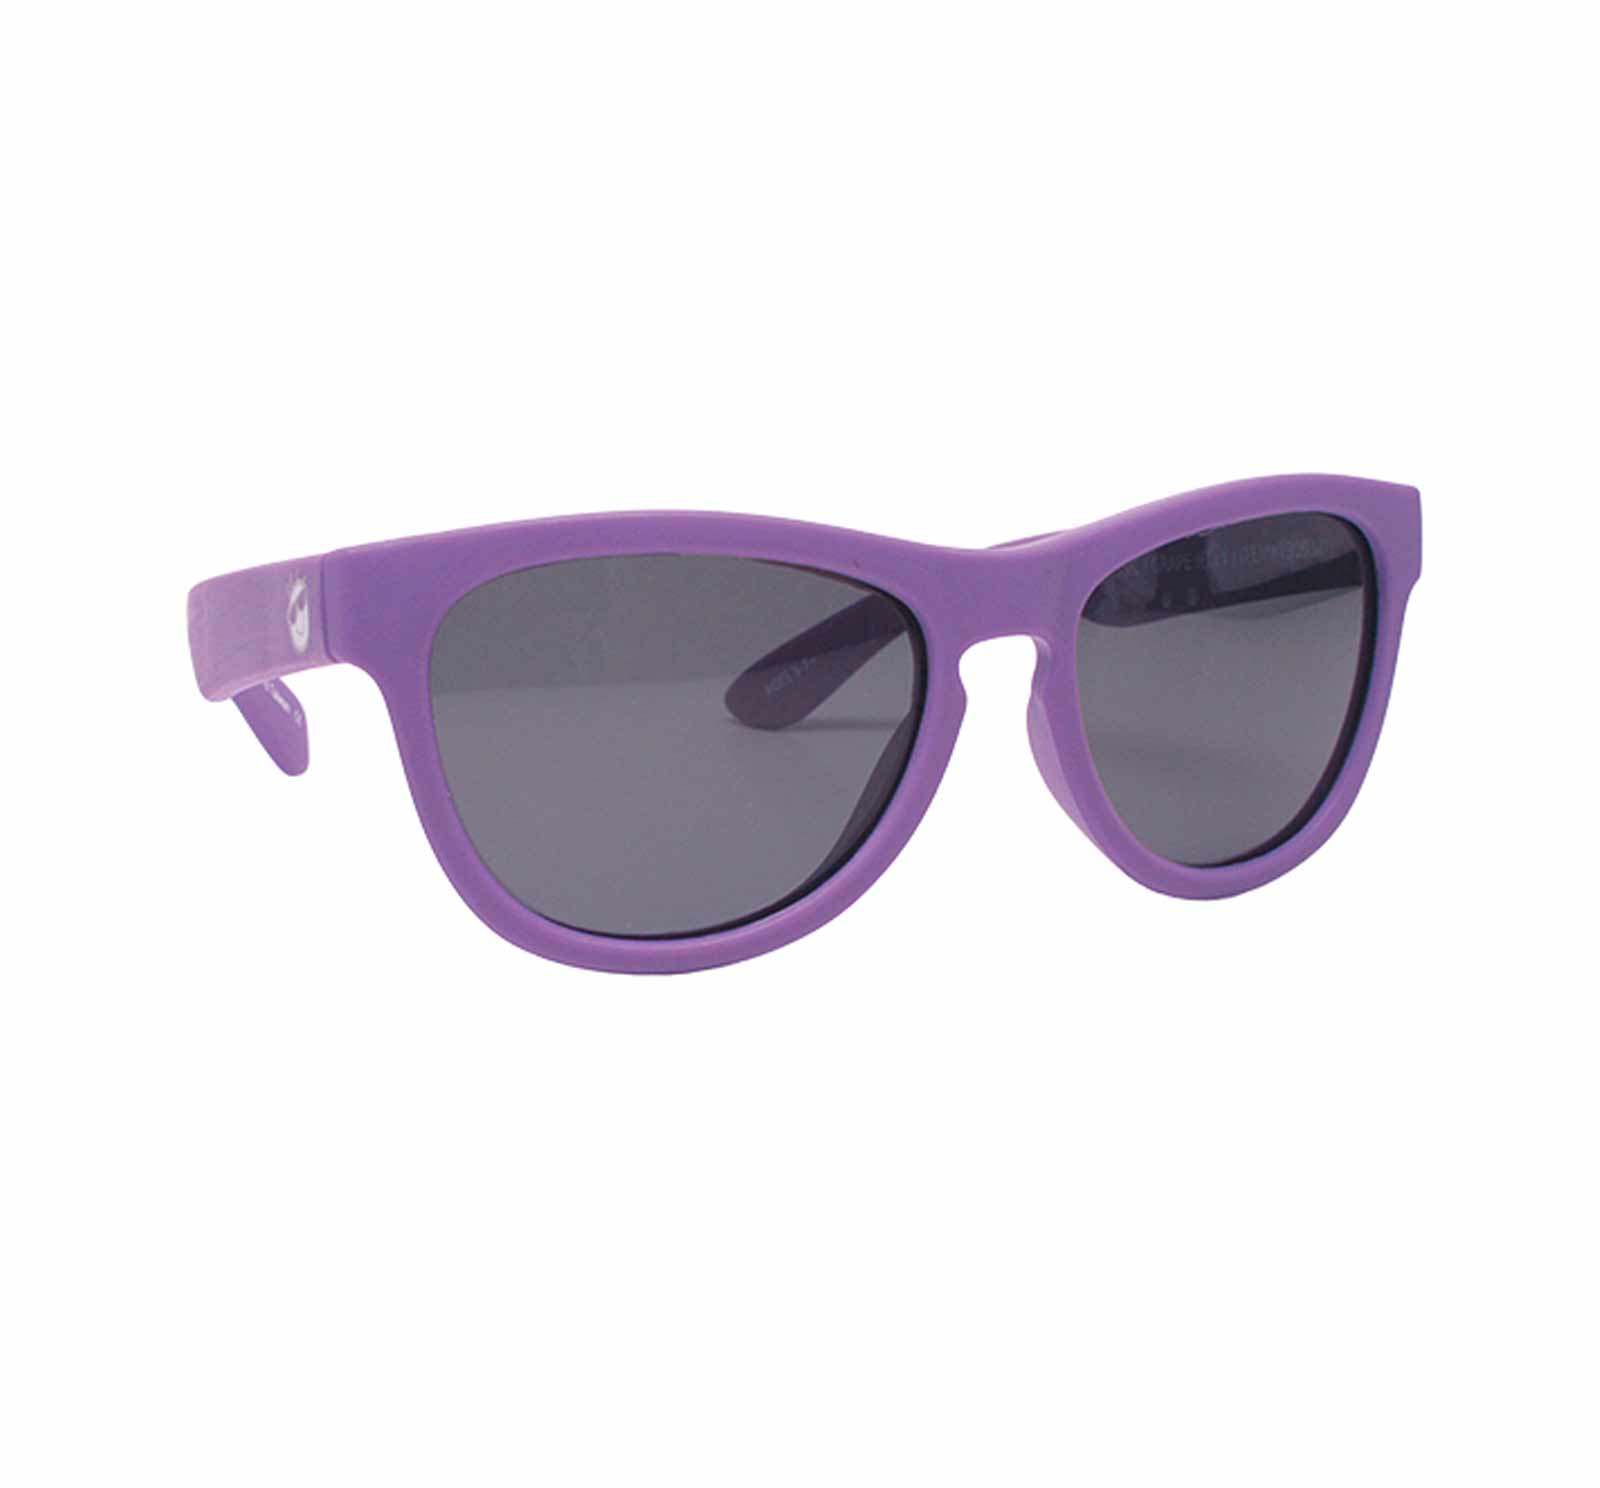 Mini Shades Classic Kid's Polarized Sunglasses (Ages 0-3) - Little Lilac